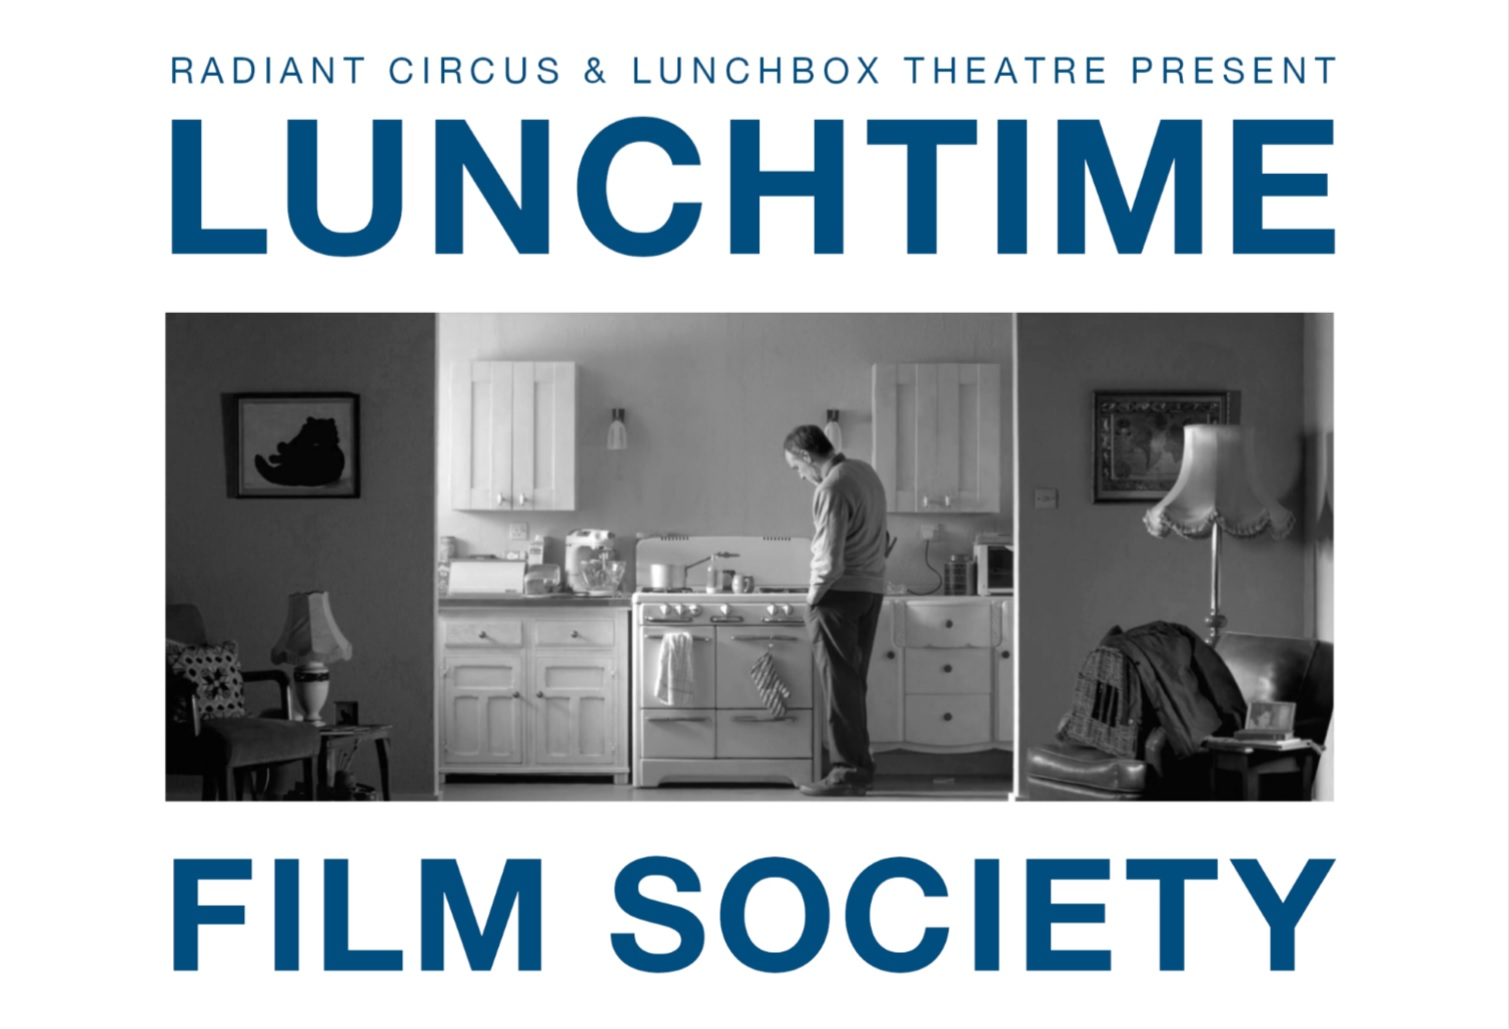 Lunchtime Film Society